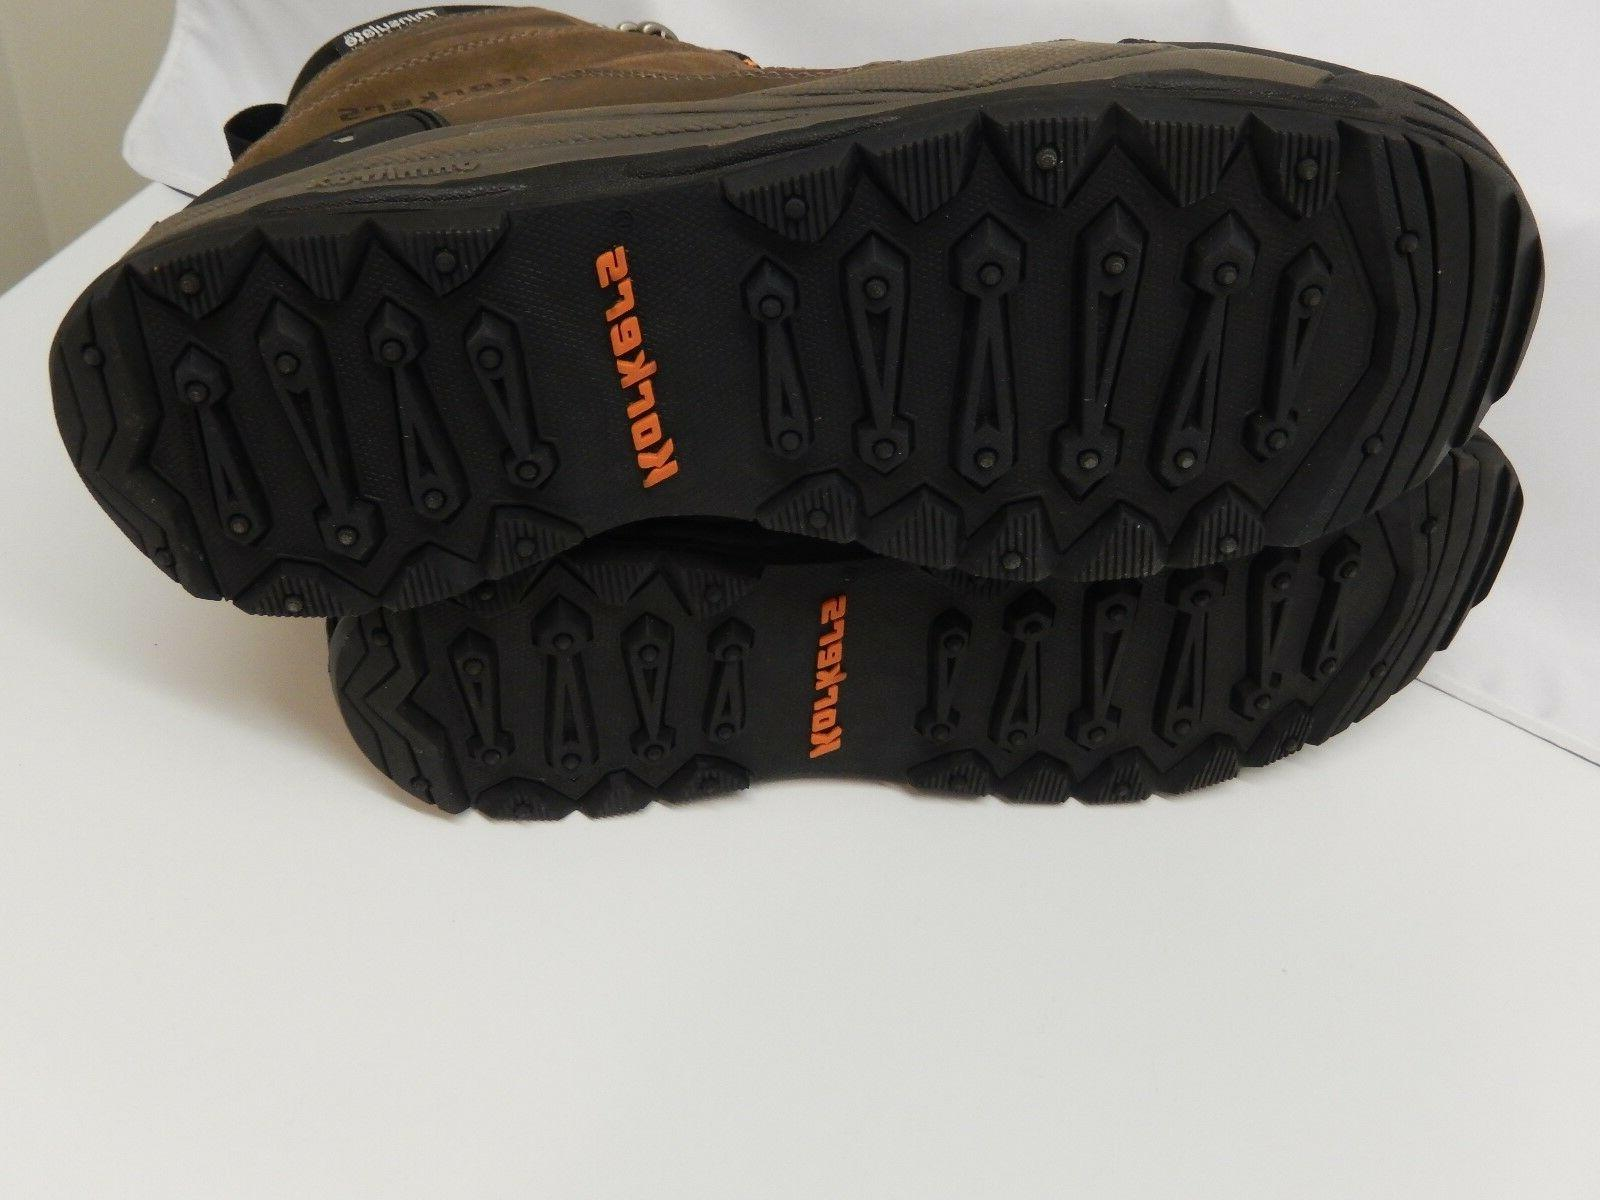 Men's Korkers Boots 12.5 with 12-1/2